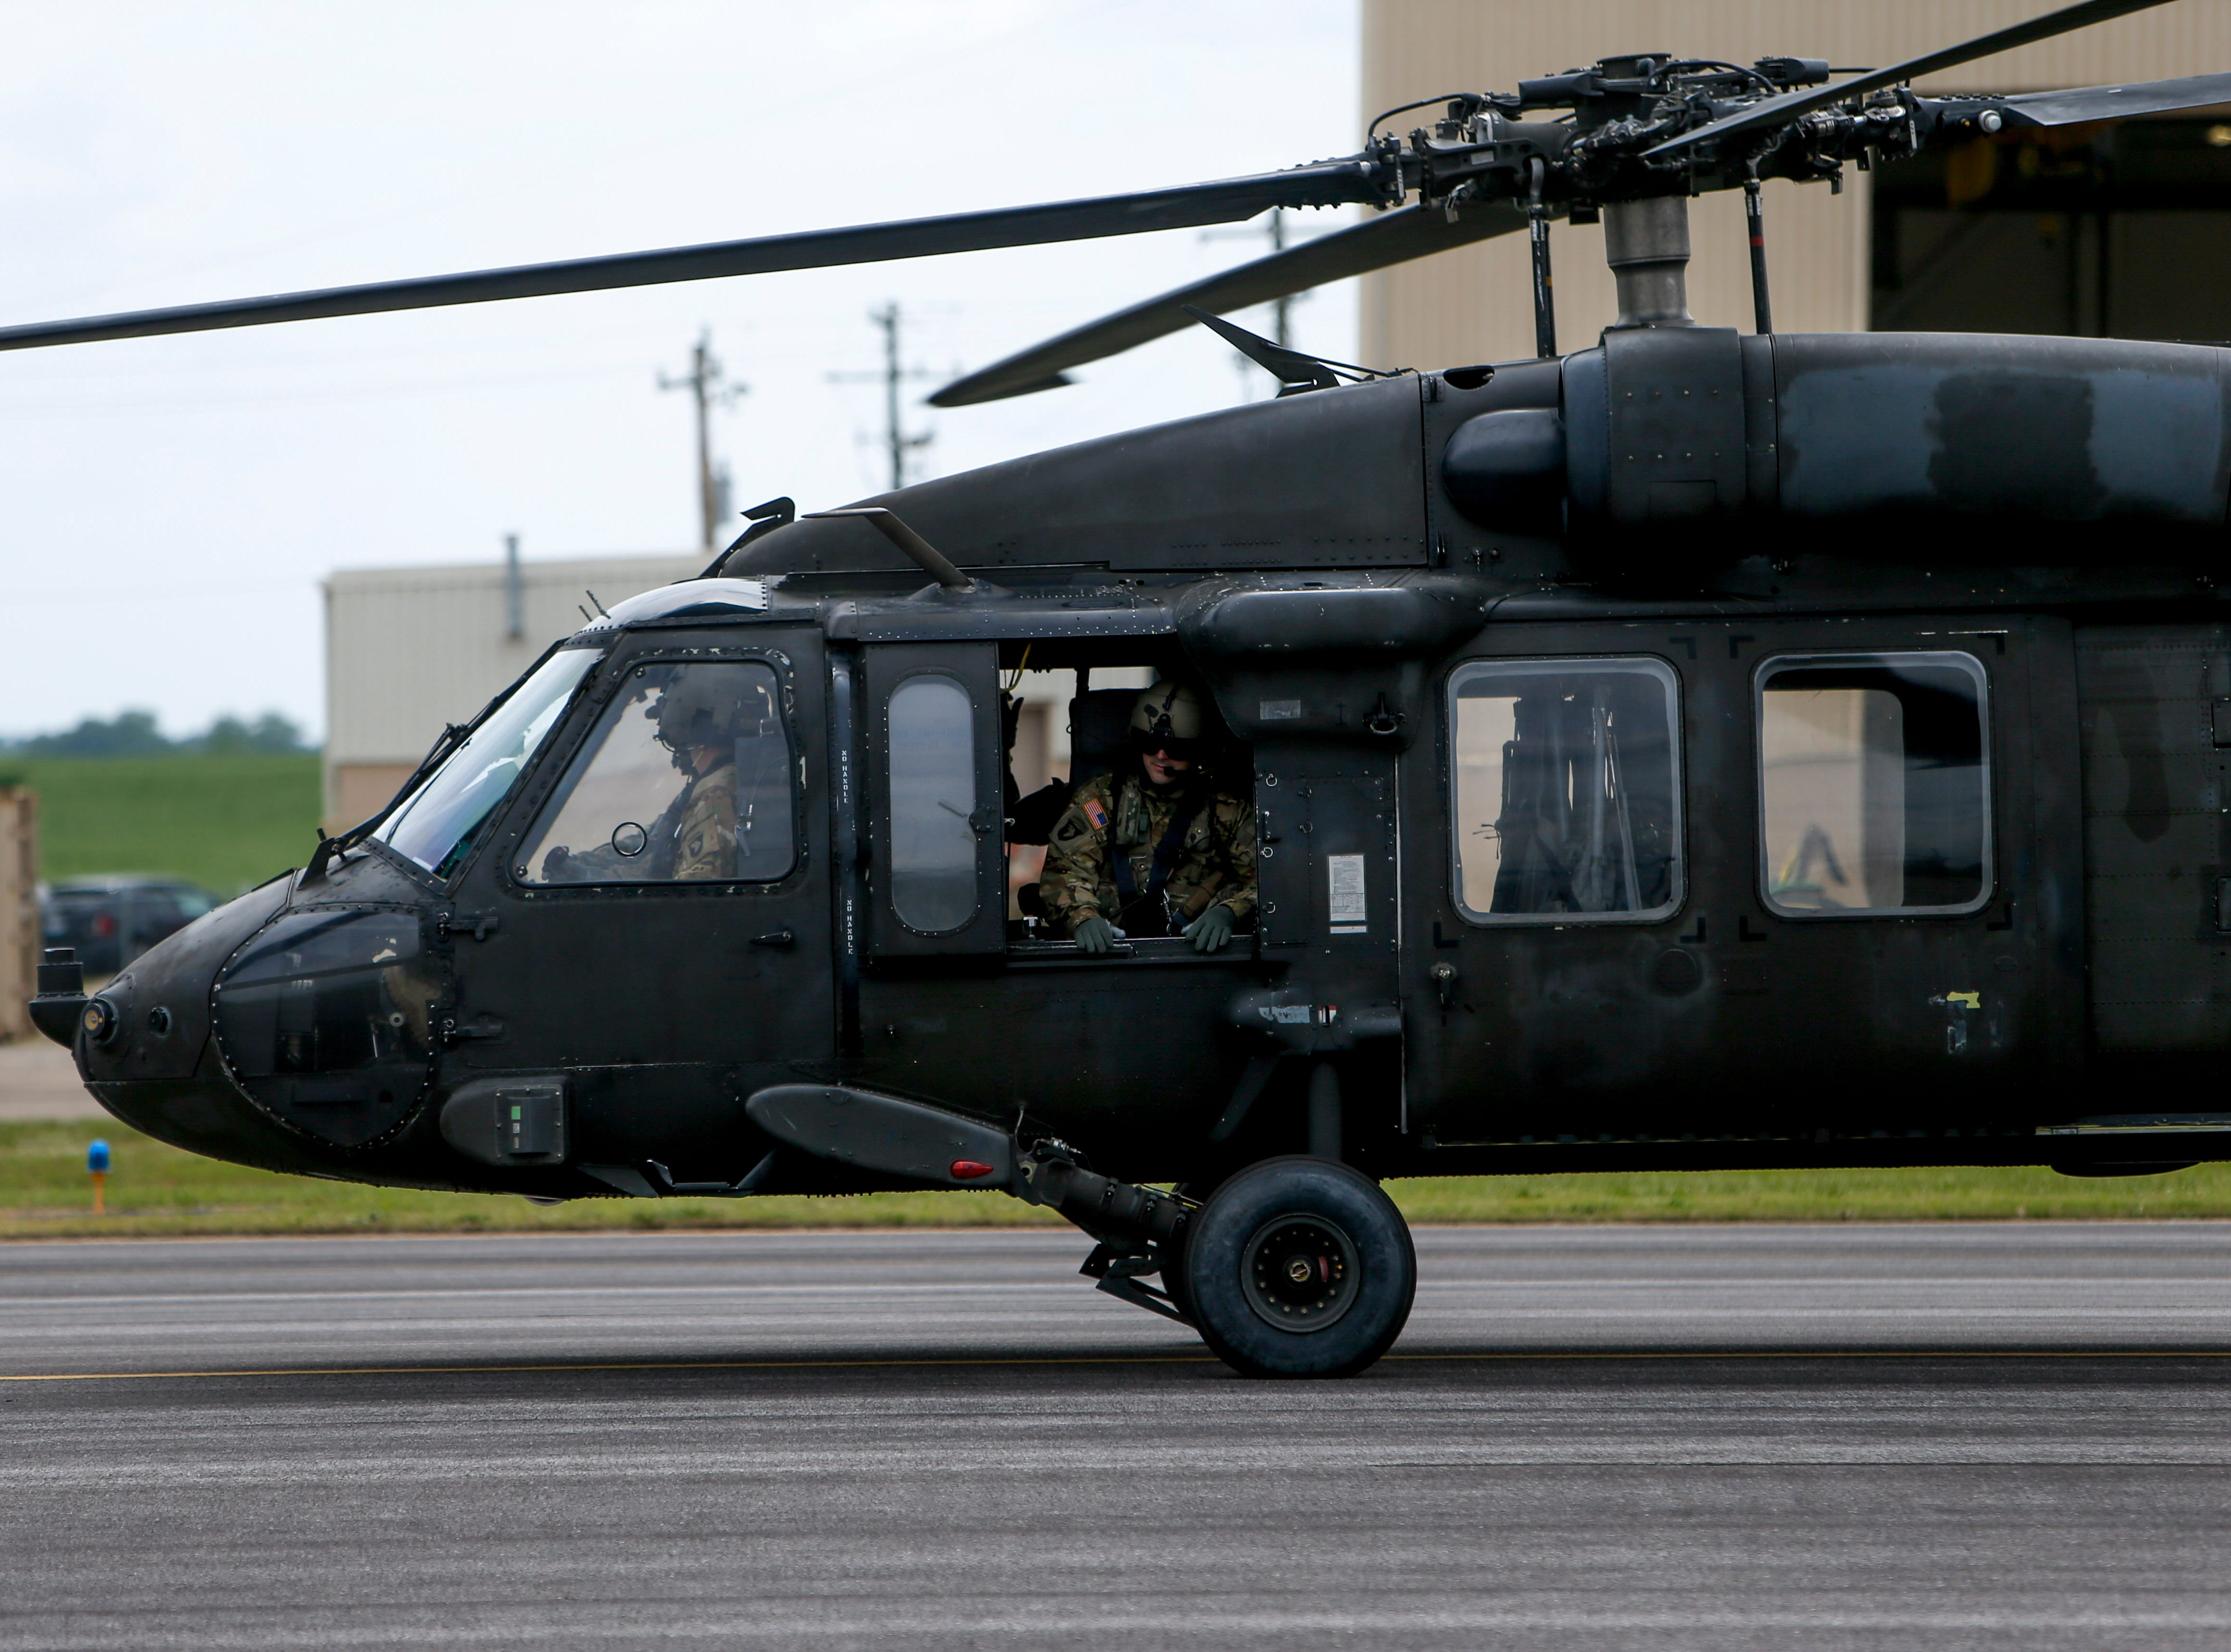 A crew prepares to take a Black Hawk helicopter for a flight at Campbell Army Airfield in Fort Campbell, KY., on Wednesday, May 1, 2019.